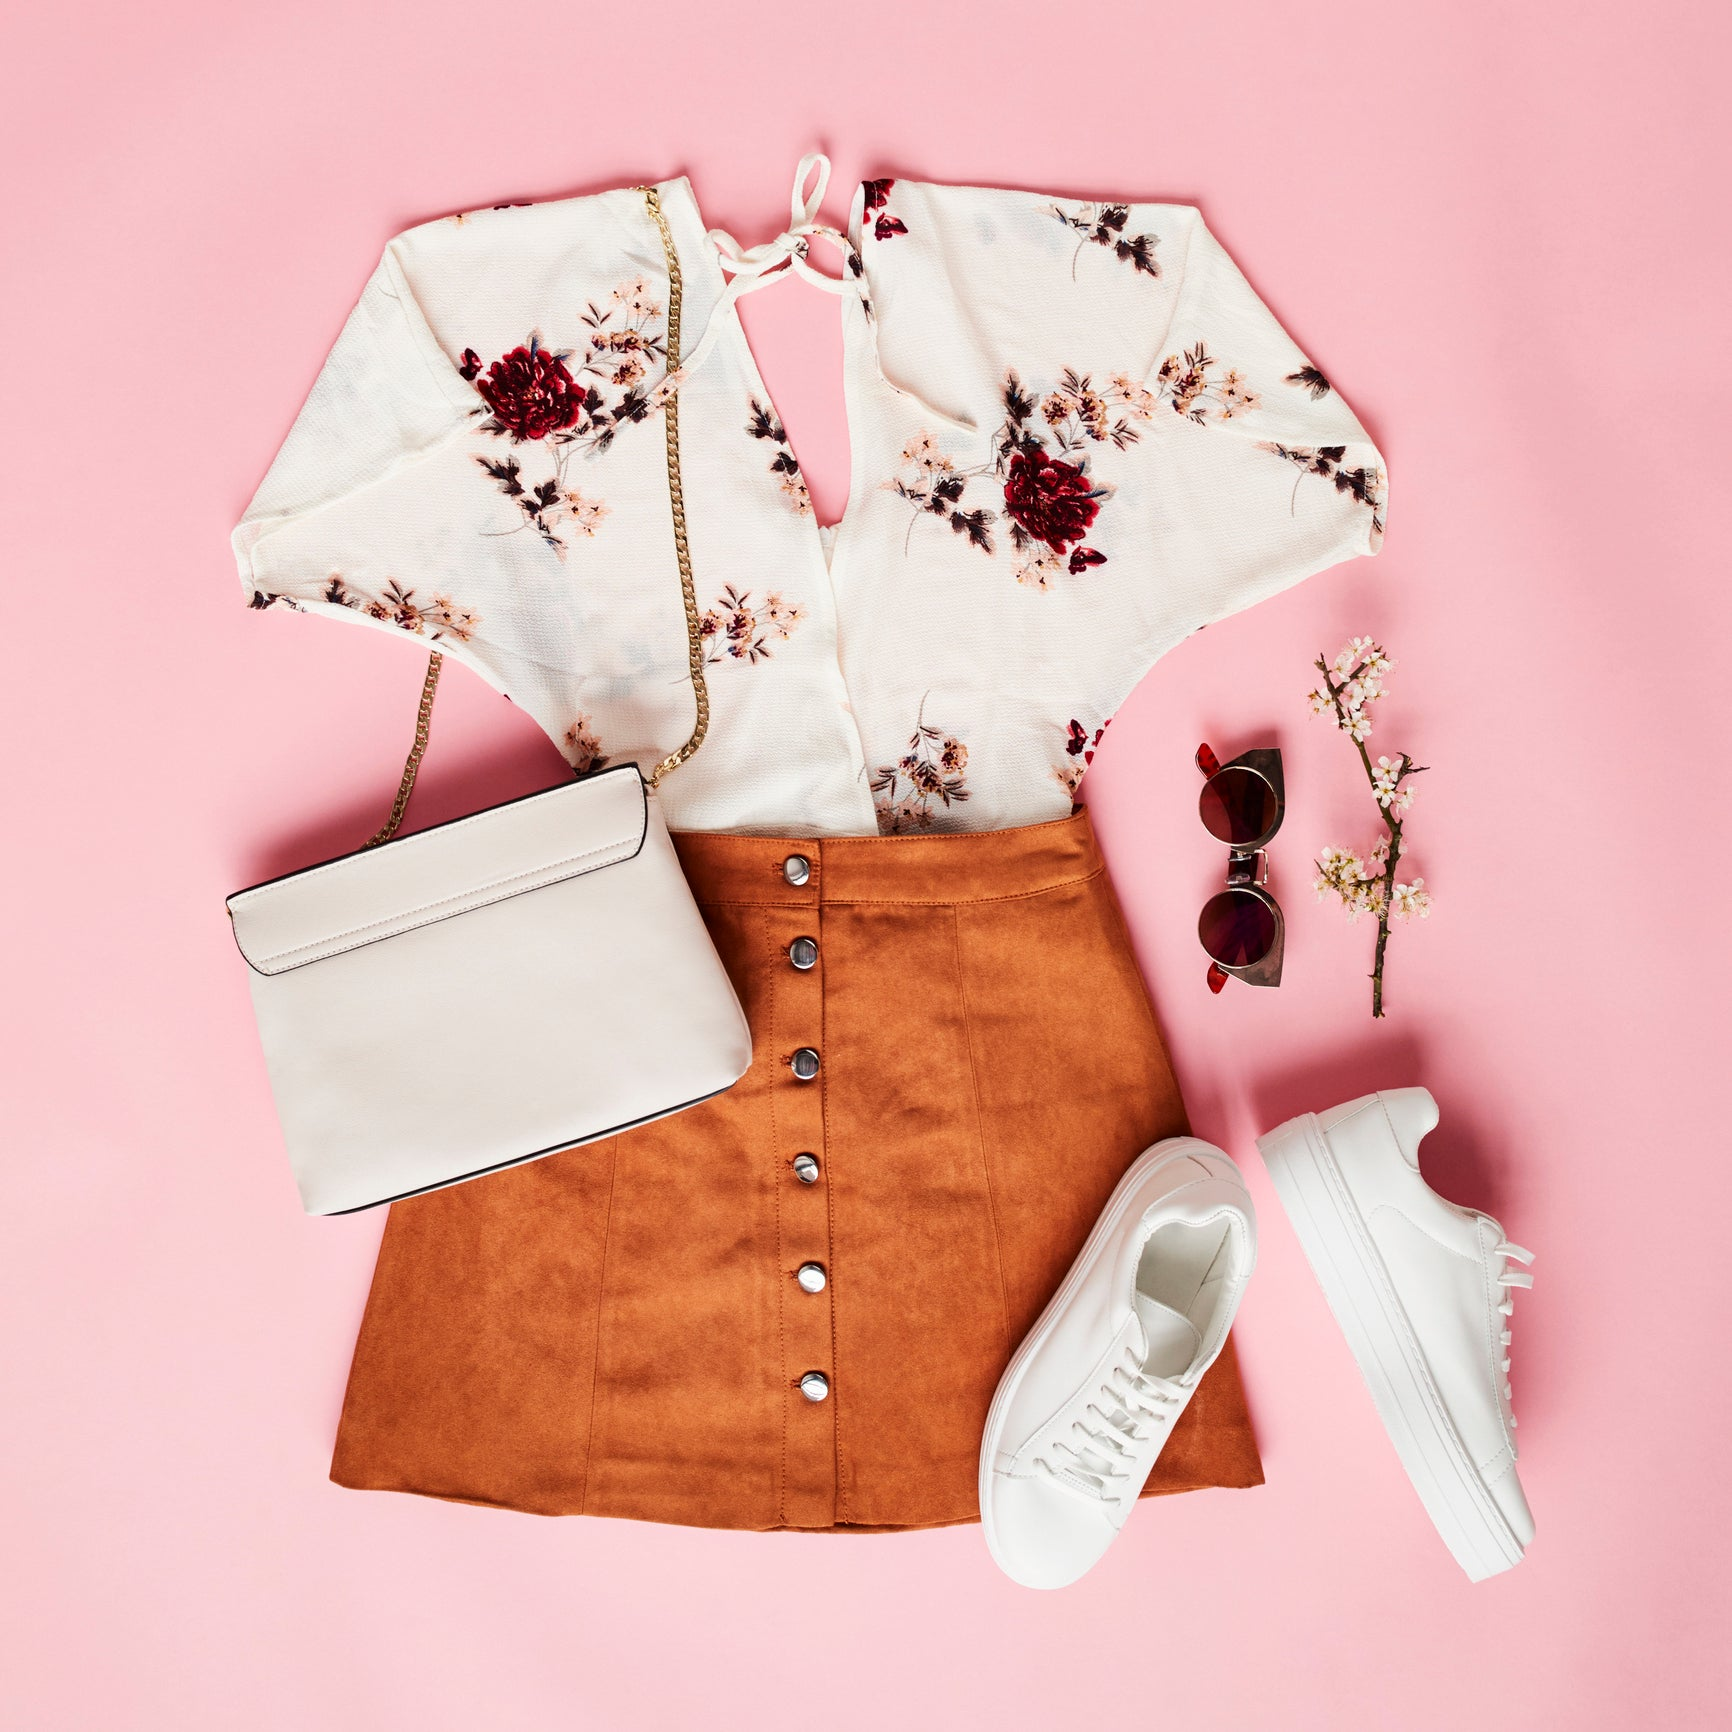 """Can Stitch Fix's """"Shop Your Looks"""" Become a Major Revenue Driver? 